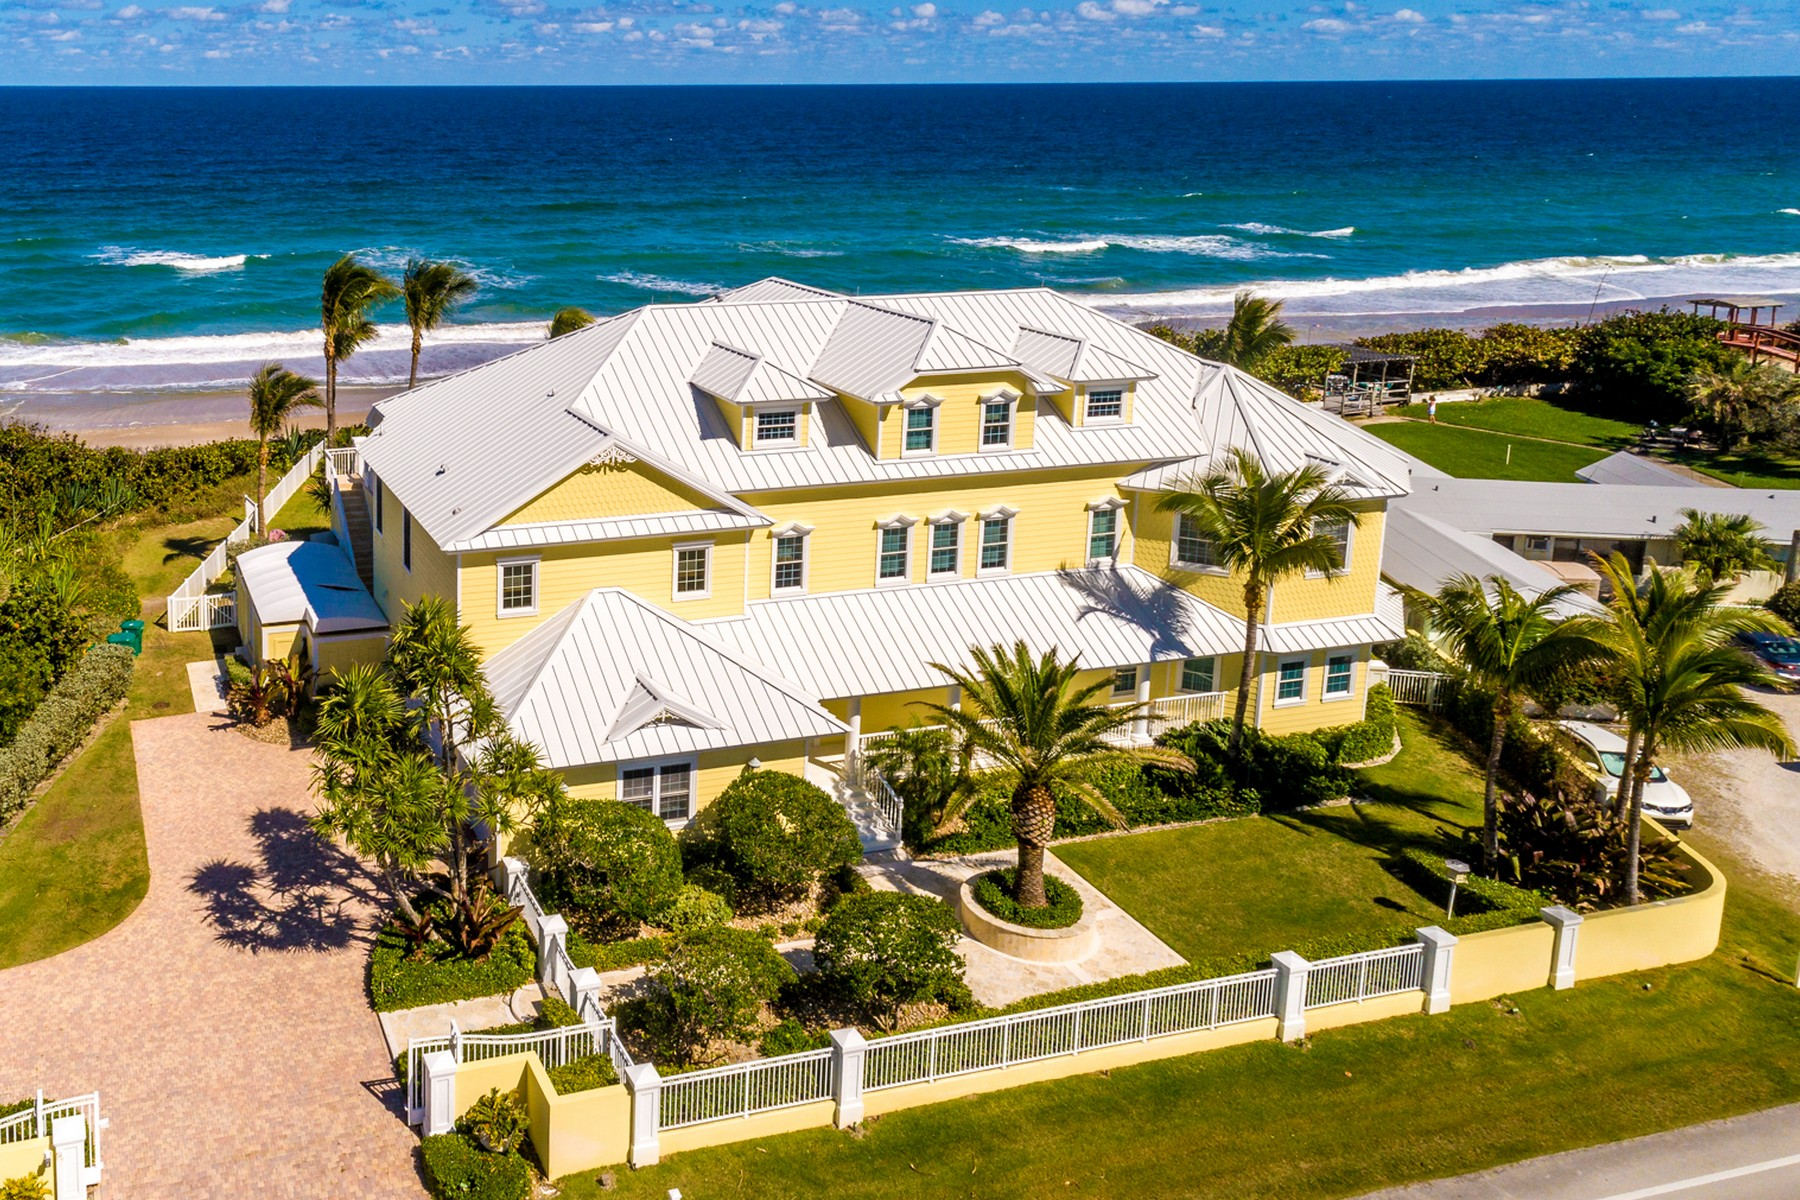 Property für Verkauf beim Gorgeous Tropically Landscaped Home with Endless Ocean Vistas 5045 S Highway A1A Melbourne Beach, Florida 32951 Vereinigte Staaten